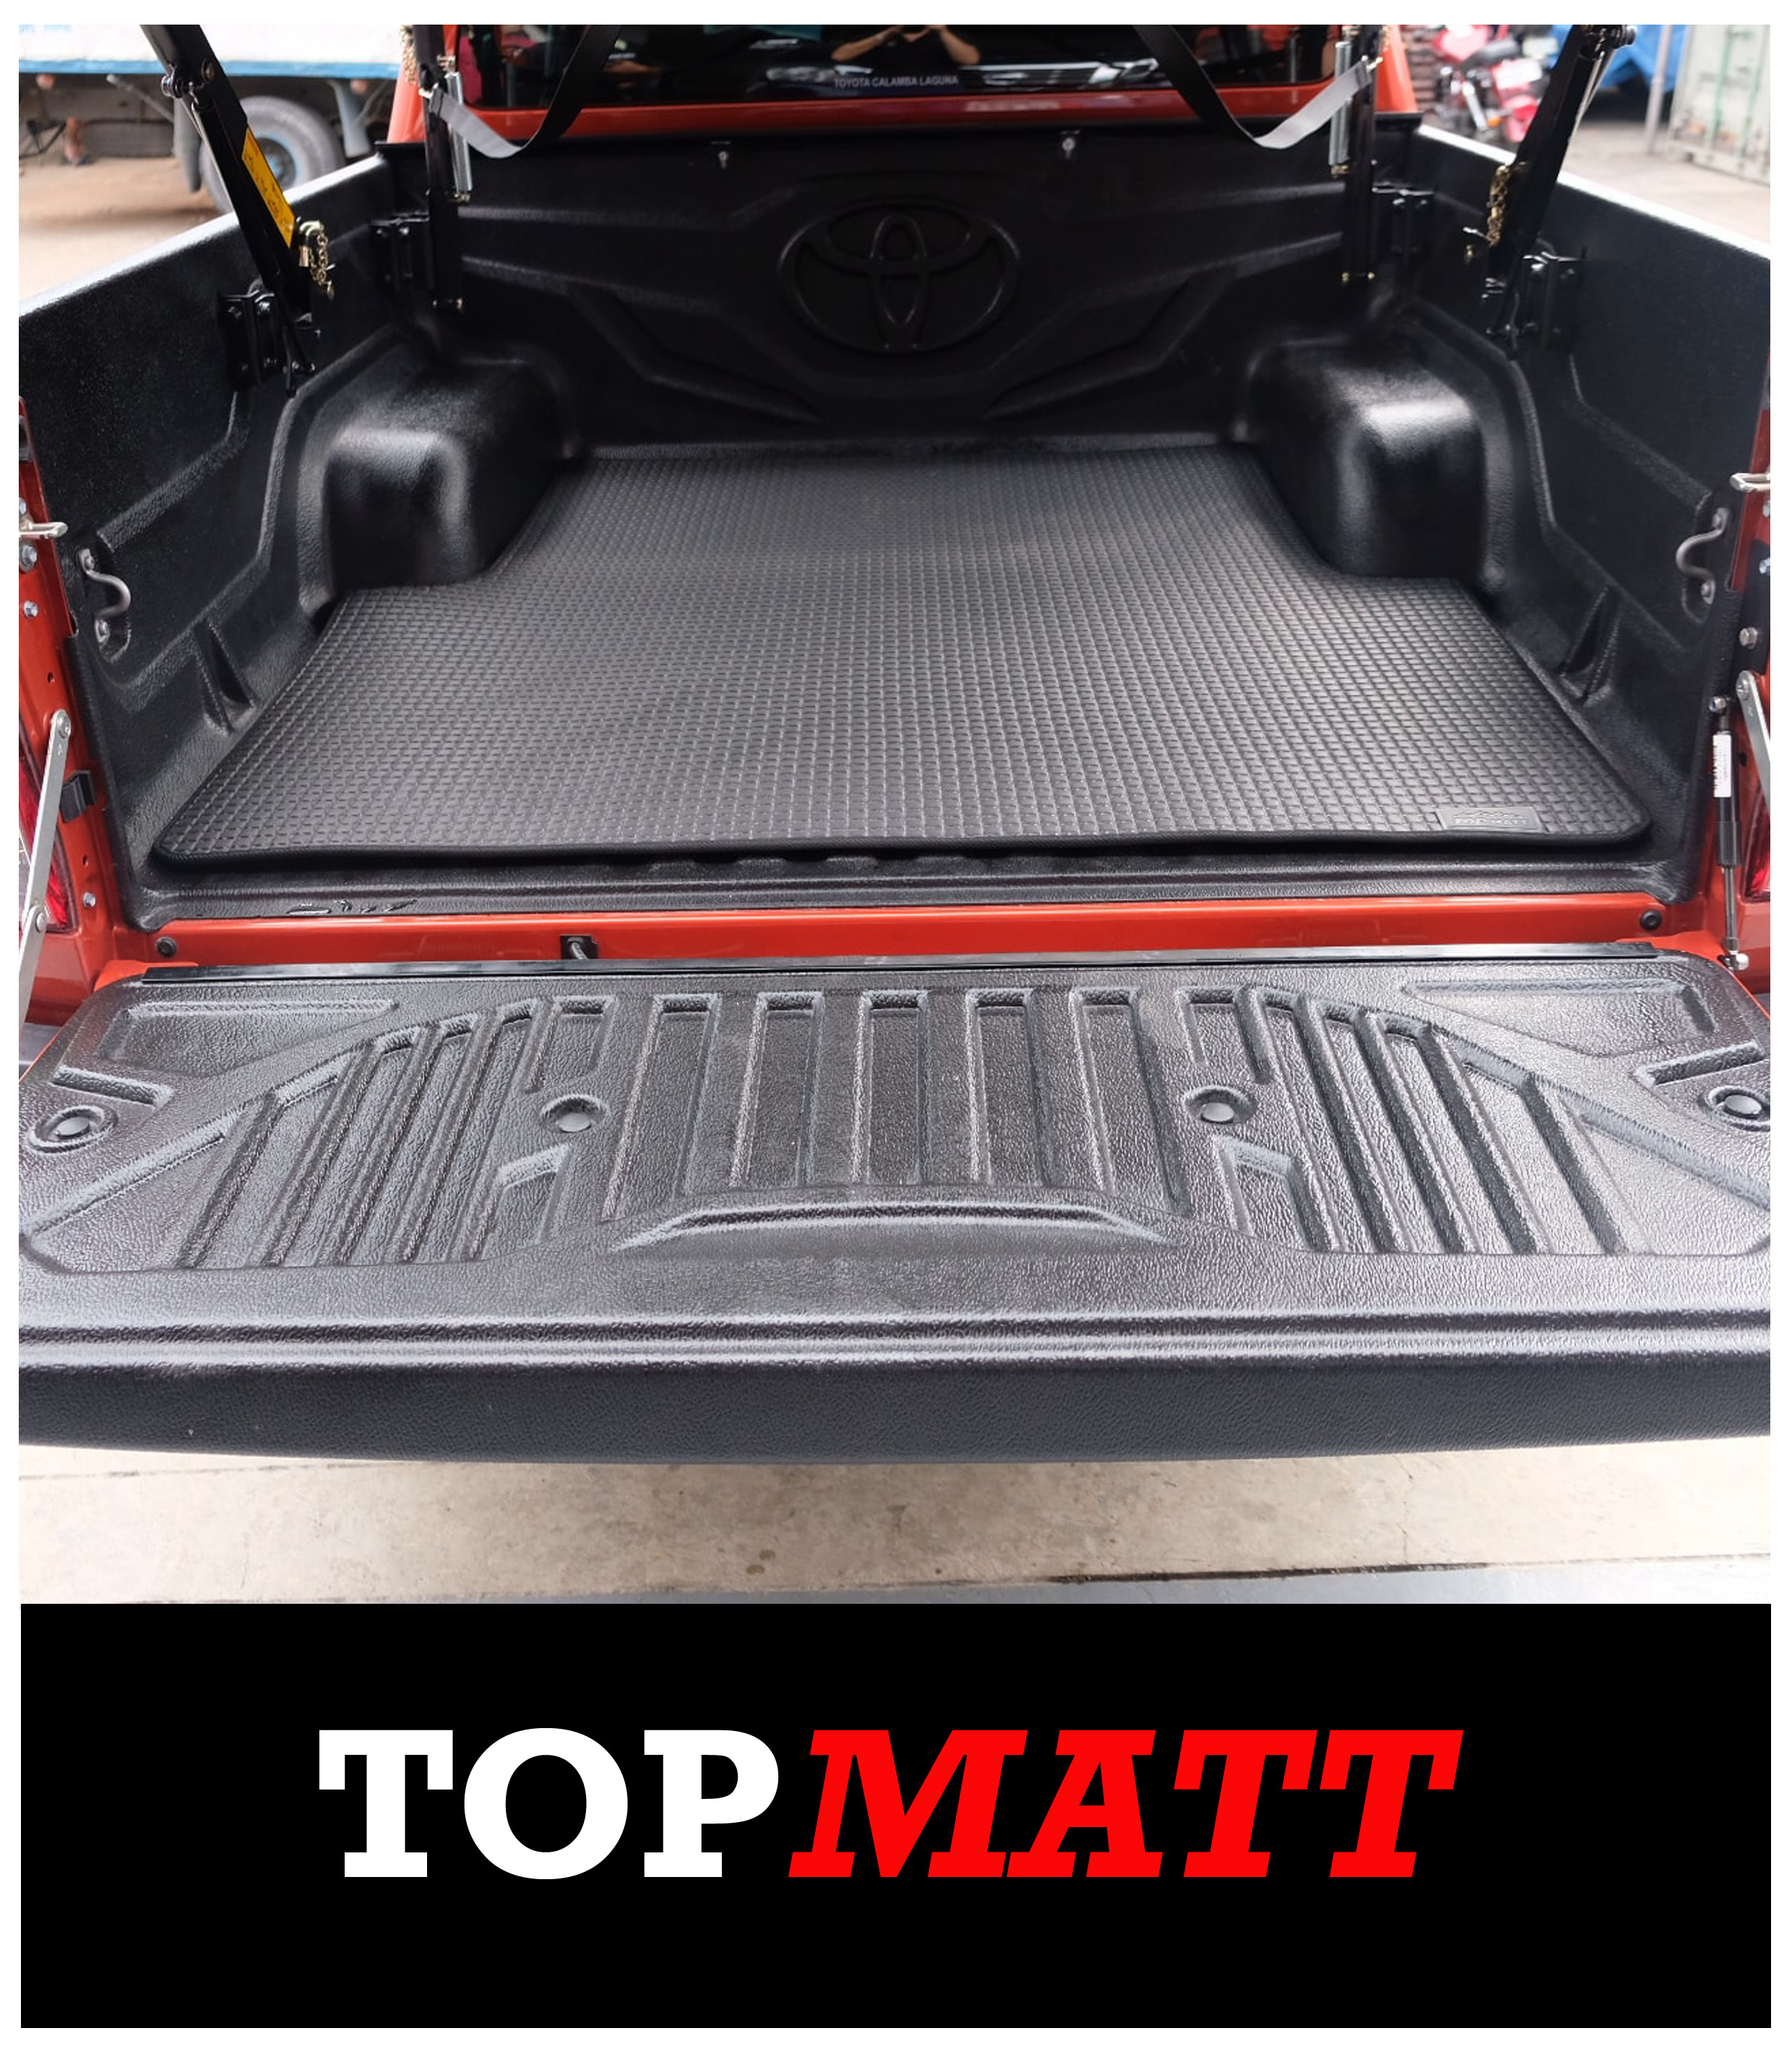 WEbsite_Hilux_TOPMATT_Thumbnail_edited-2.jpg